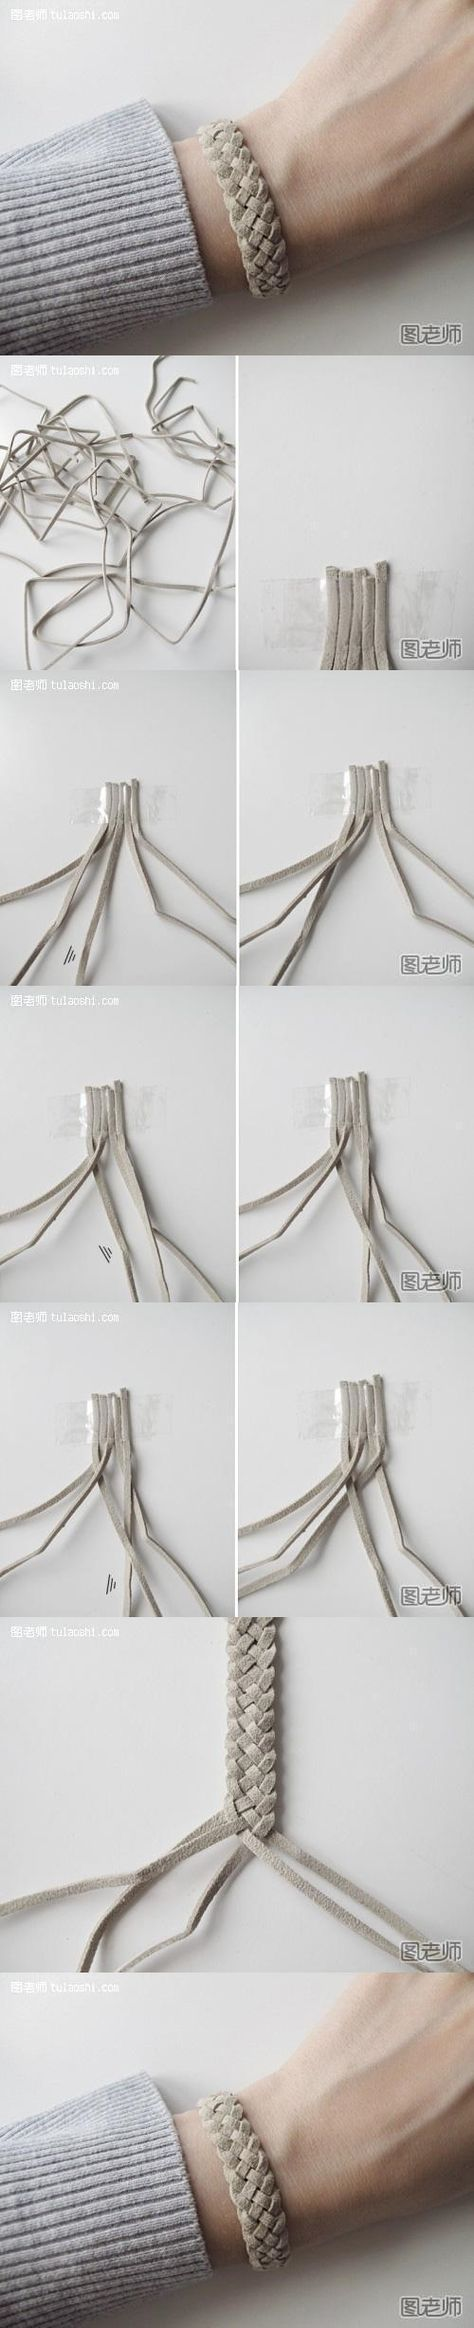 How to make your very unique bracelet step by step DIY instructions